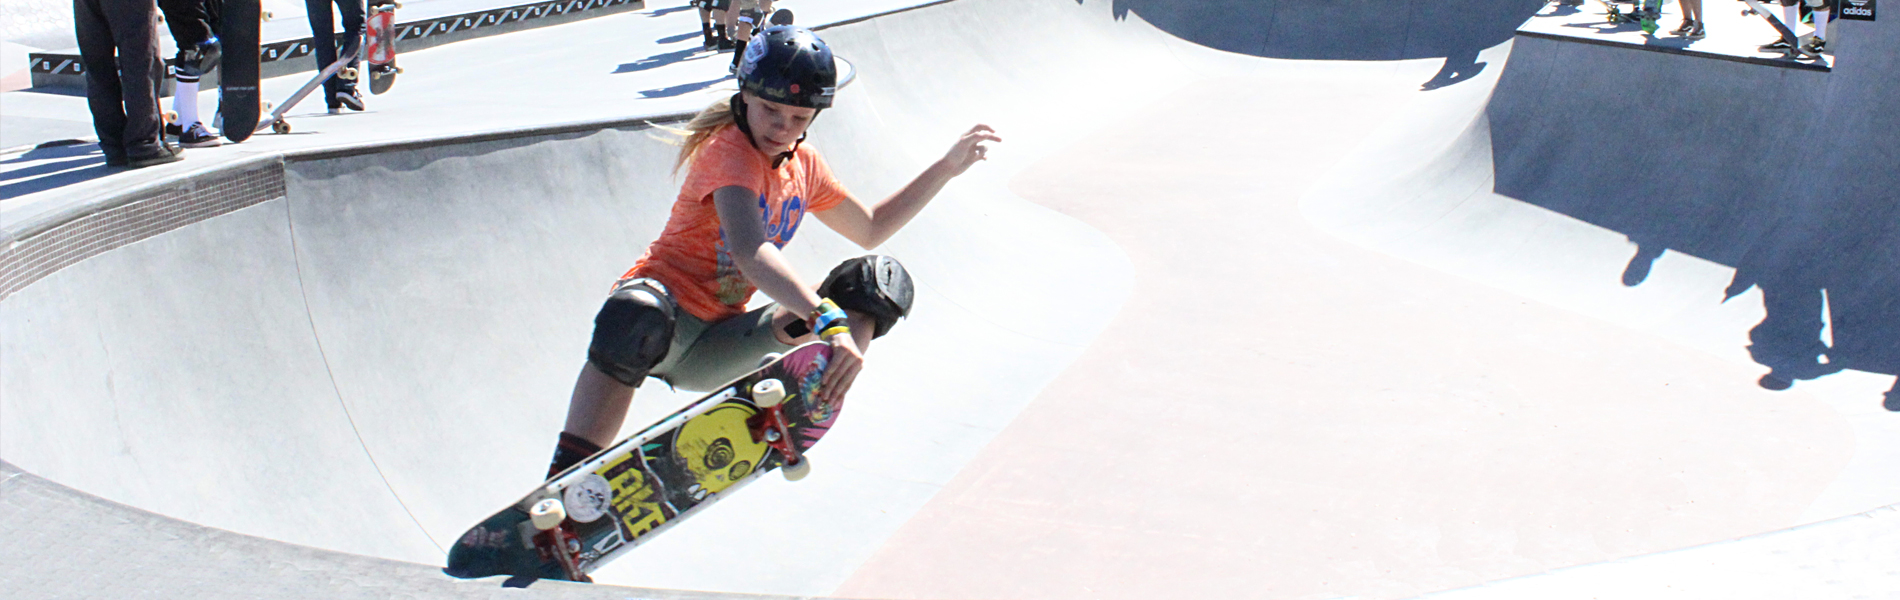 Girl-on-Skateboard-Ramp.jpg